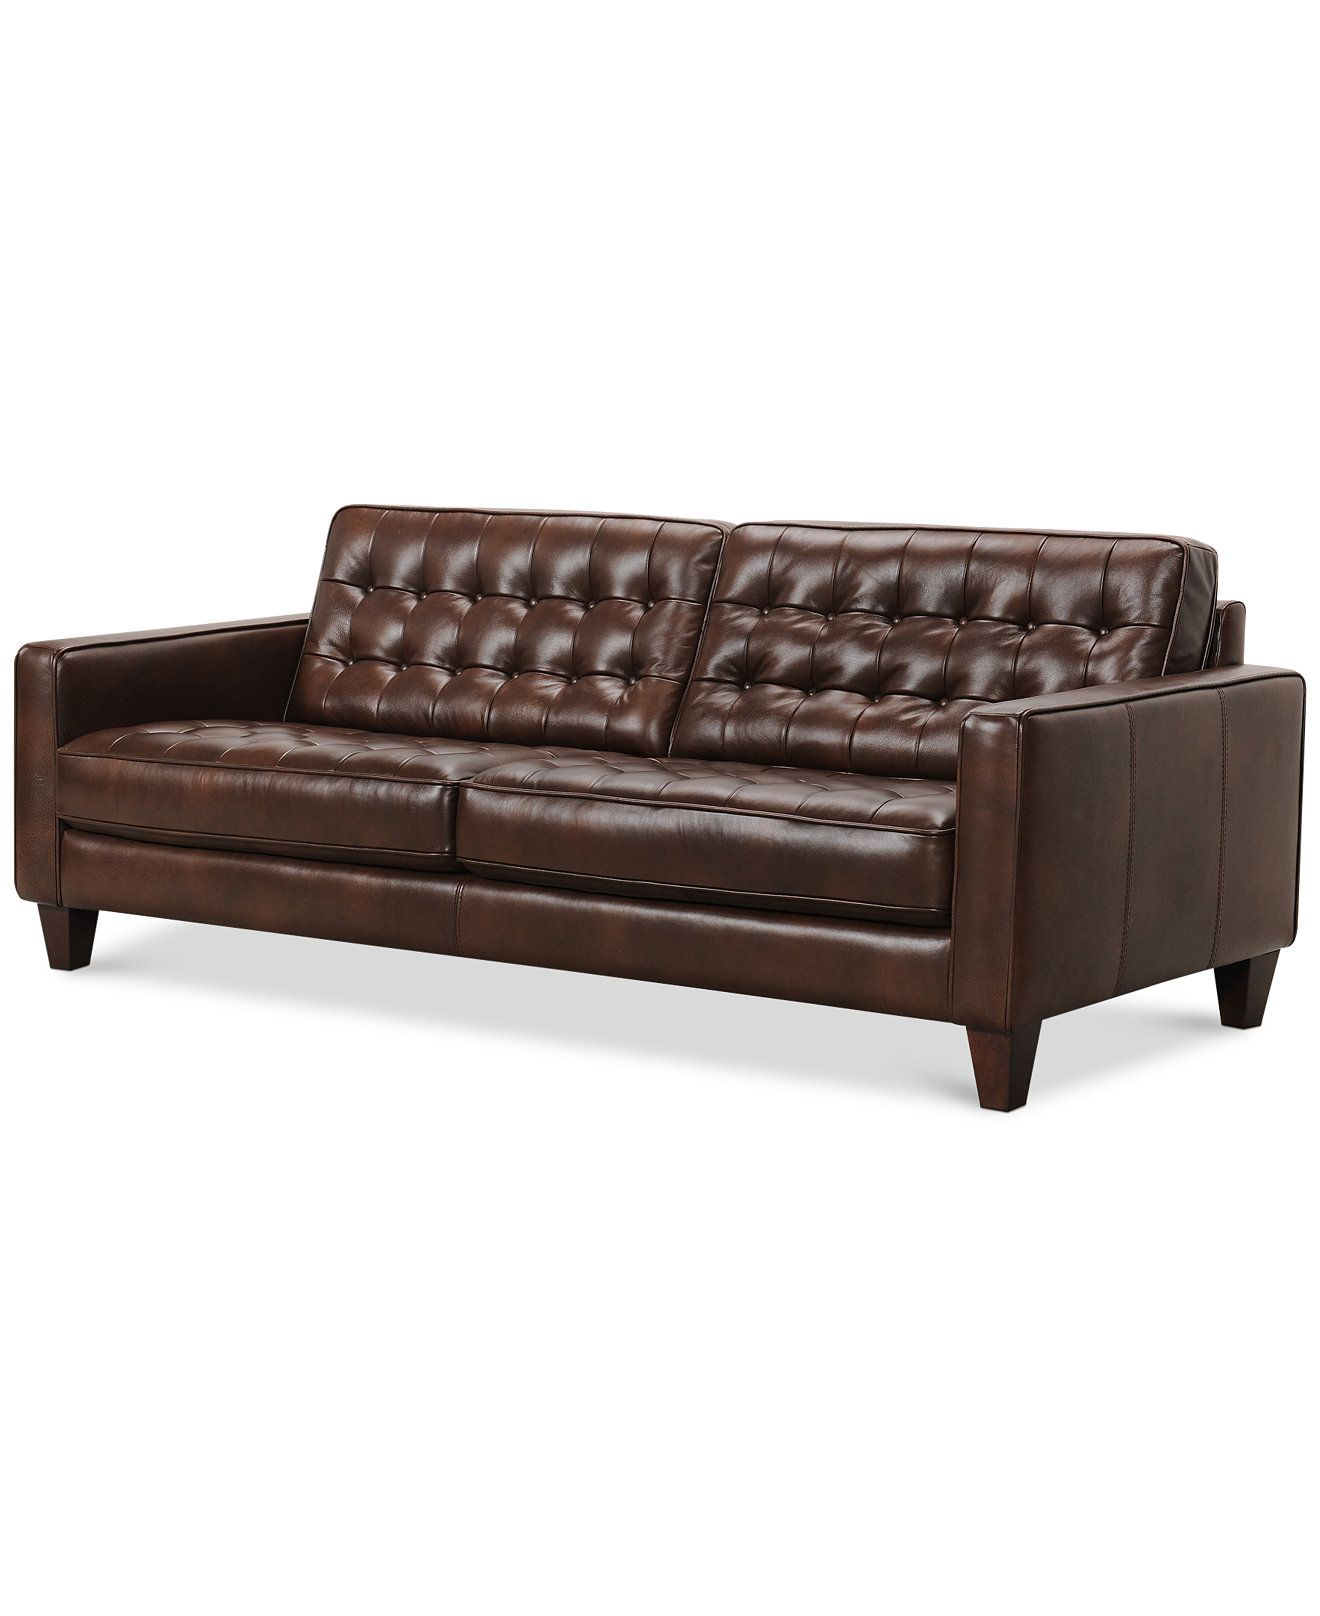 Bray Button Tufted Leather Sofa Reviews Furniture Macy S Tufted Leather Sofa Leather Sofa Couch Leather Sofa Furniture